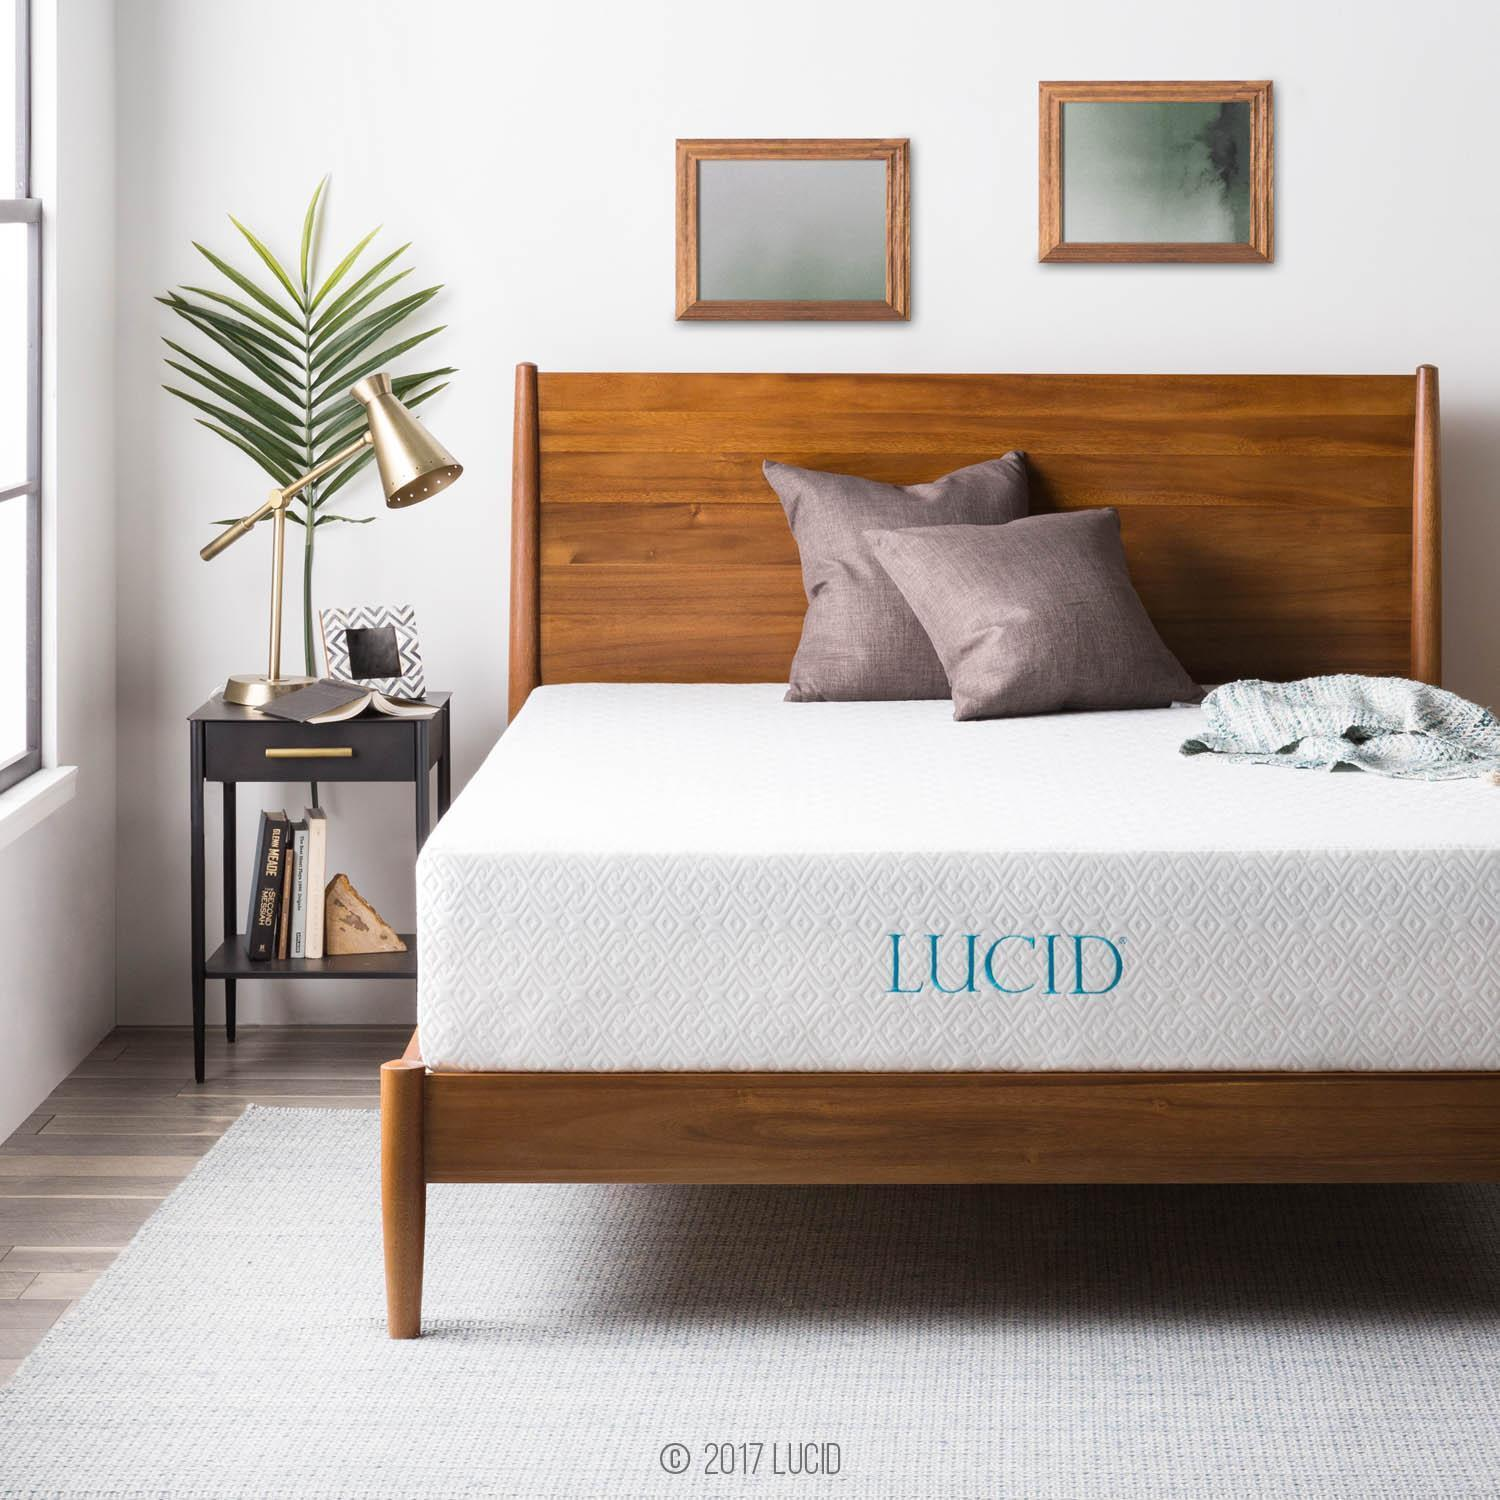 LUCID 6, 8, 10, and 12 Inch Gel Memory Foam Mattress - Twin